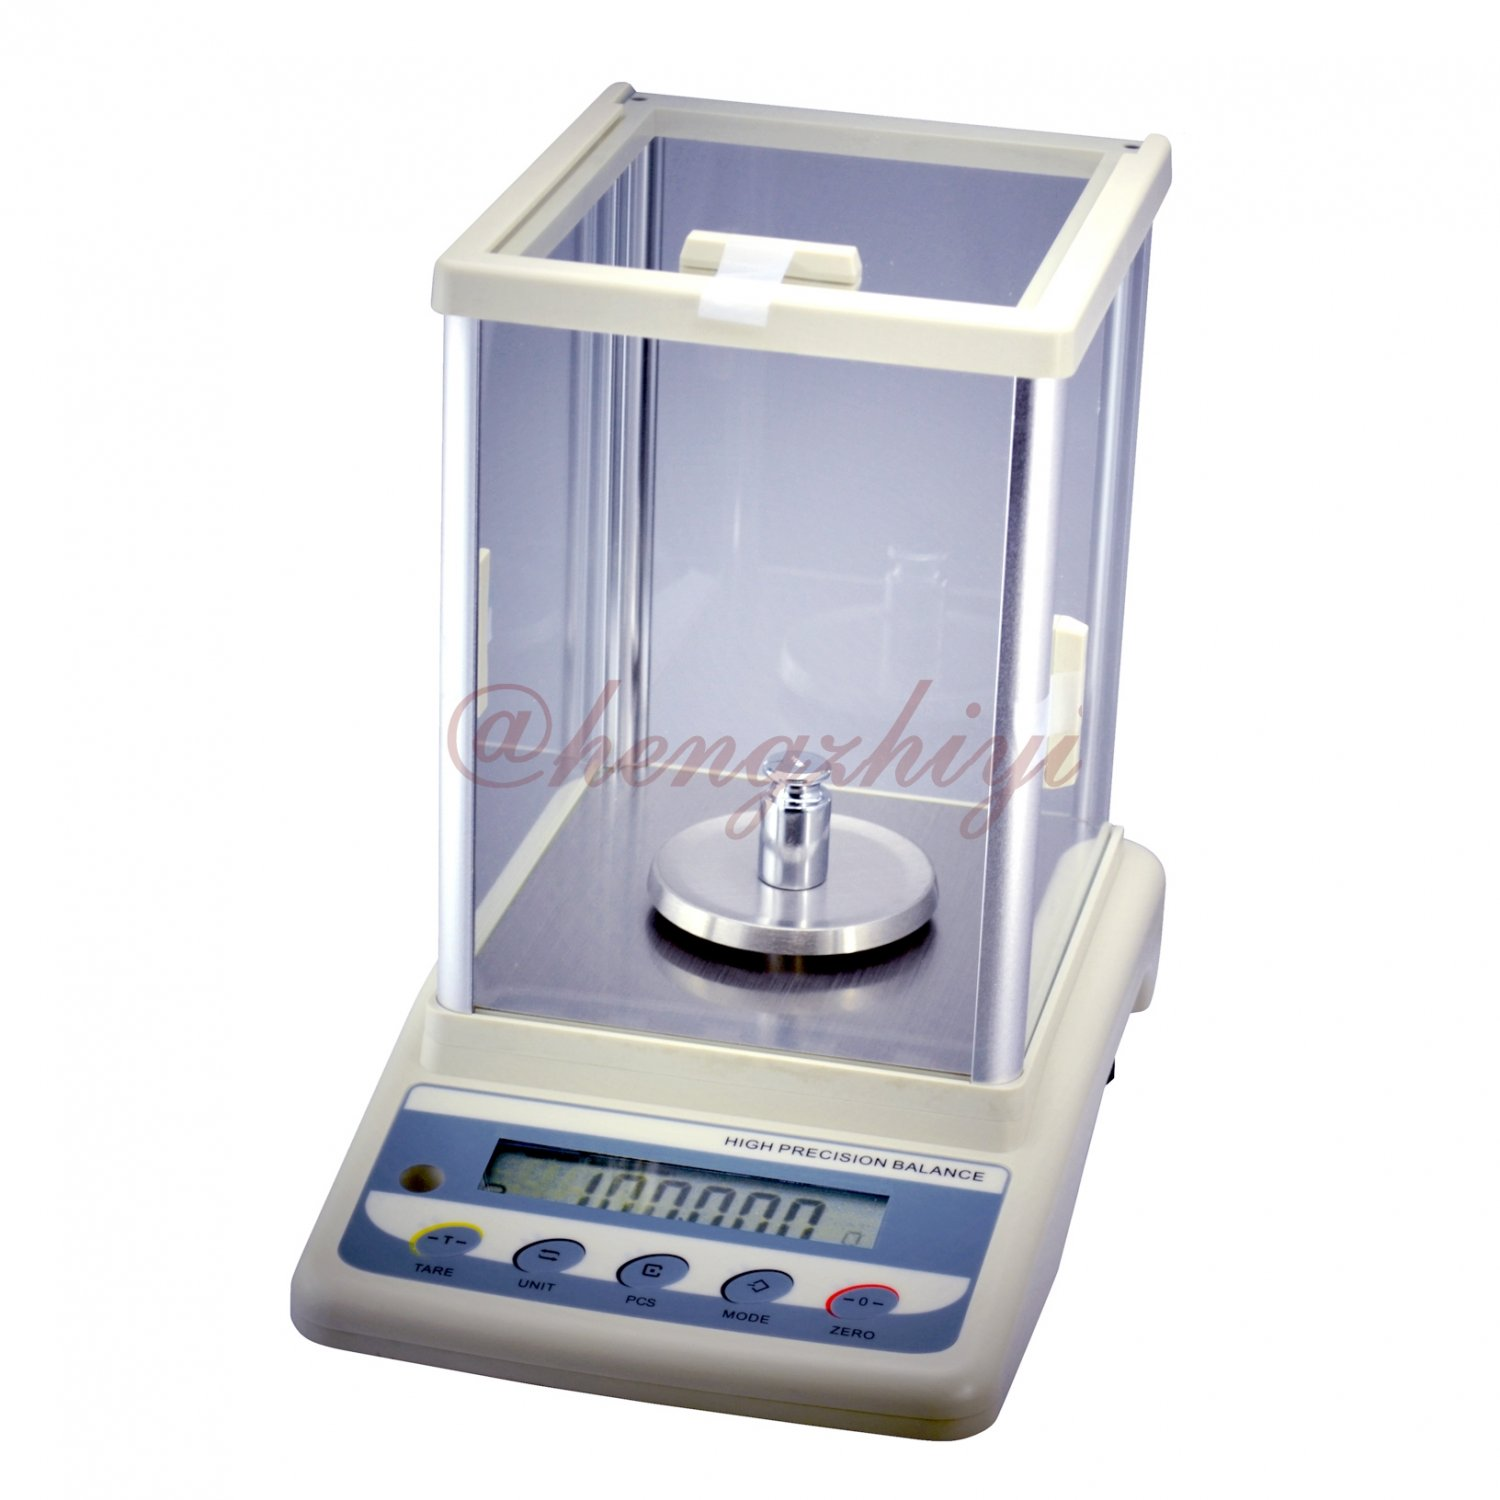 200g x 0.001g Jewelry Carat Scale Lab Balance + German Sensor + Wind Shield + RS232 Interface